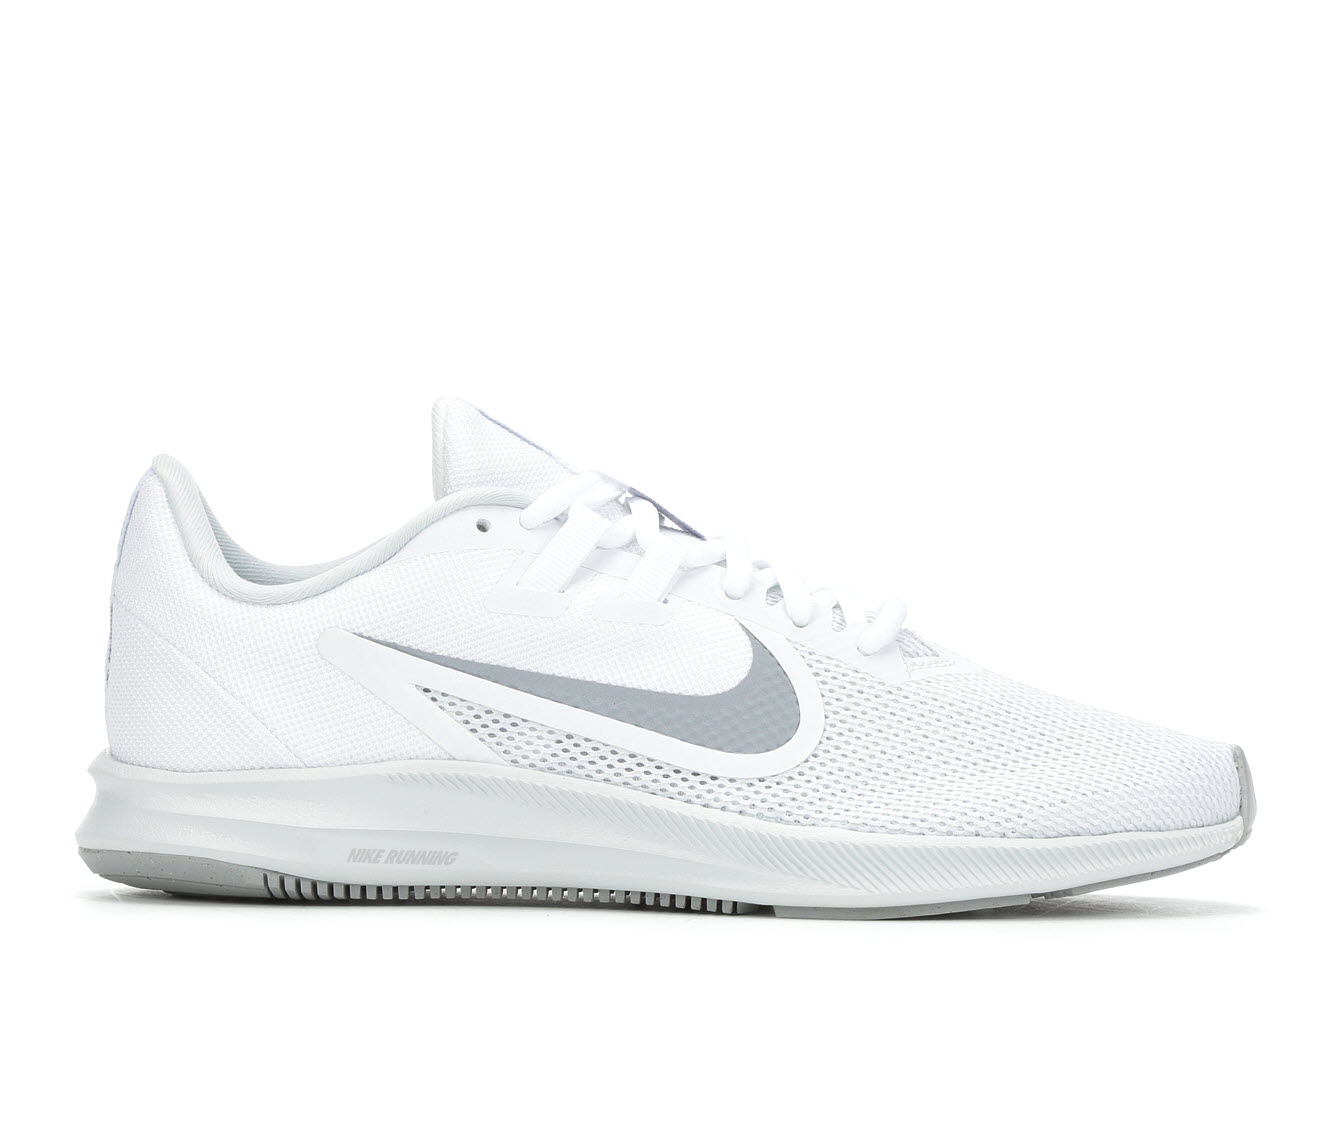 Nike Downshifter 9 Women's Athletic Shoe (White)